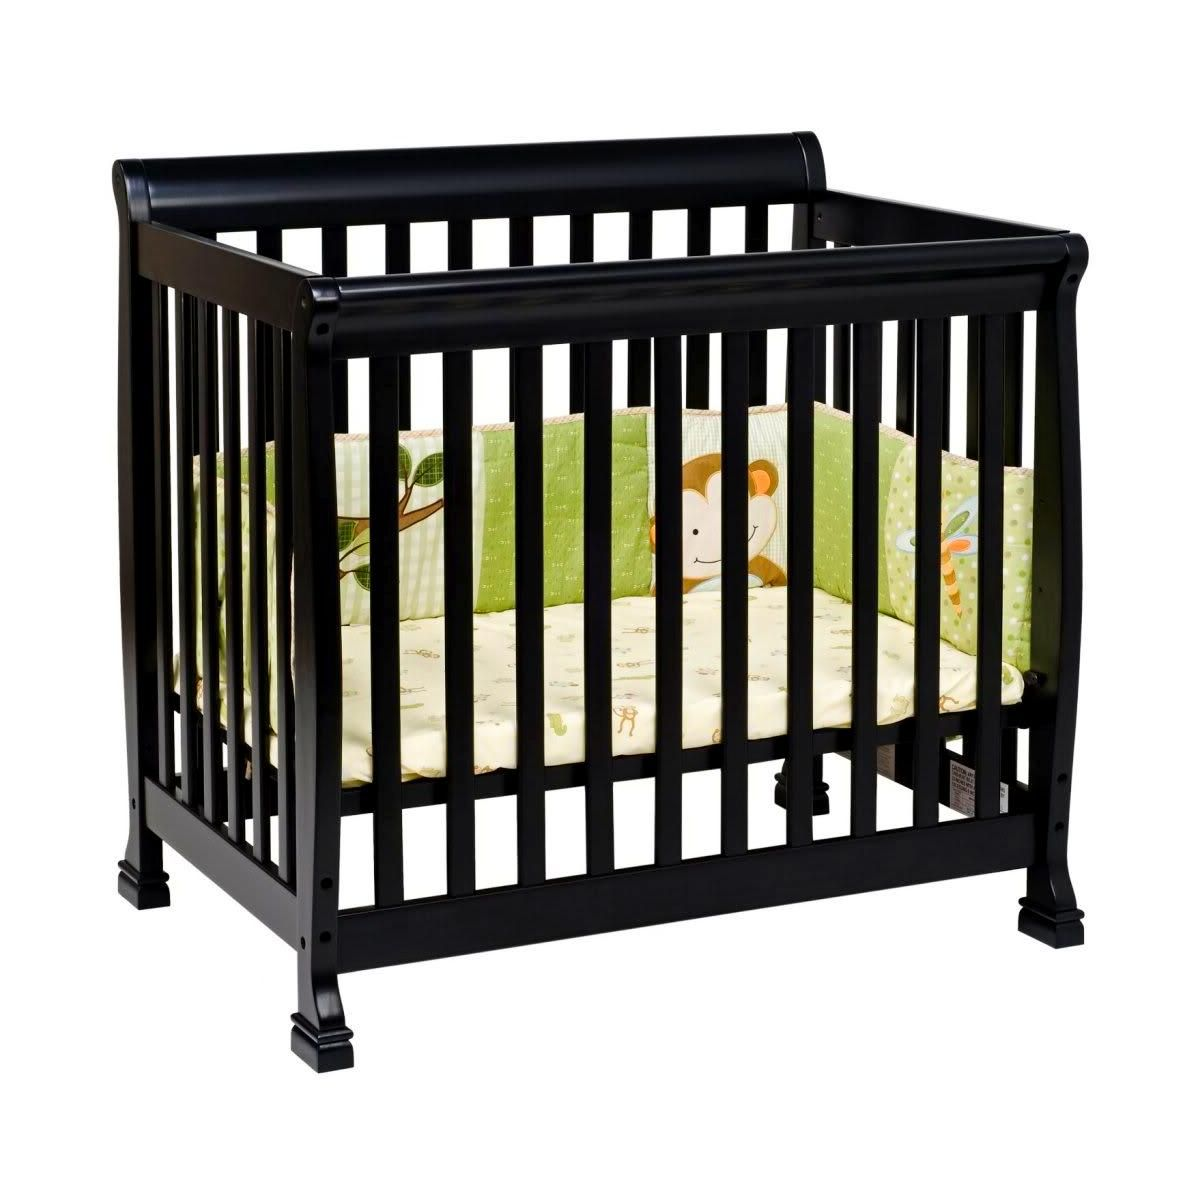 Best baby cribs for apartments - The Best Small Cribs For The Babies Black Small Cribs For Babies